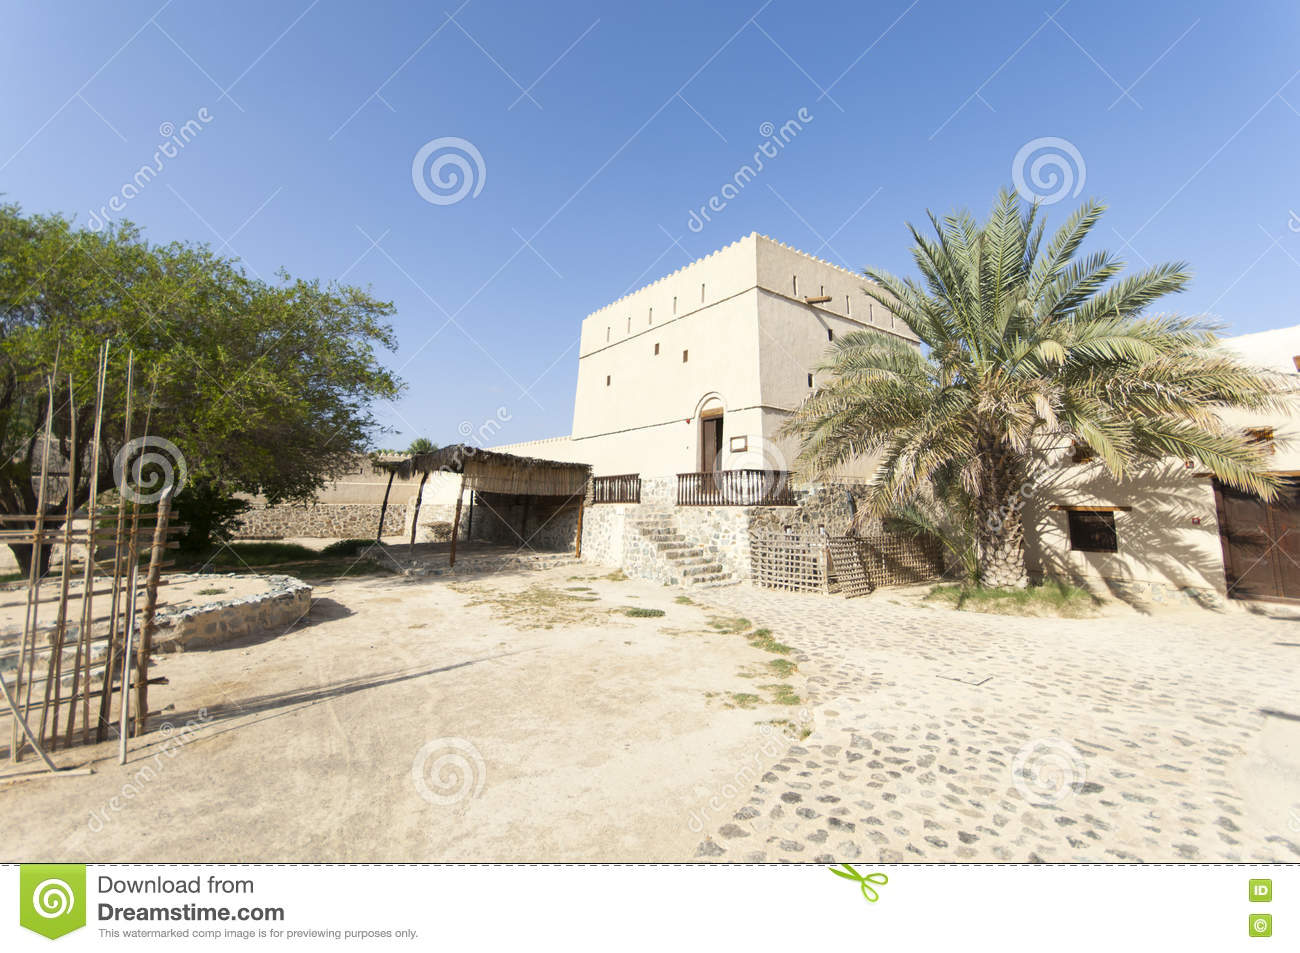 Old House In The Highlands Of Ras Al Khaimah United Arab Emirates Stock Photo Image 71494277